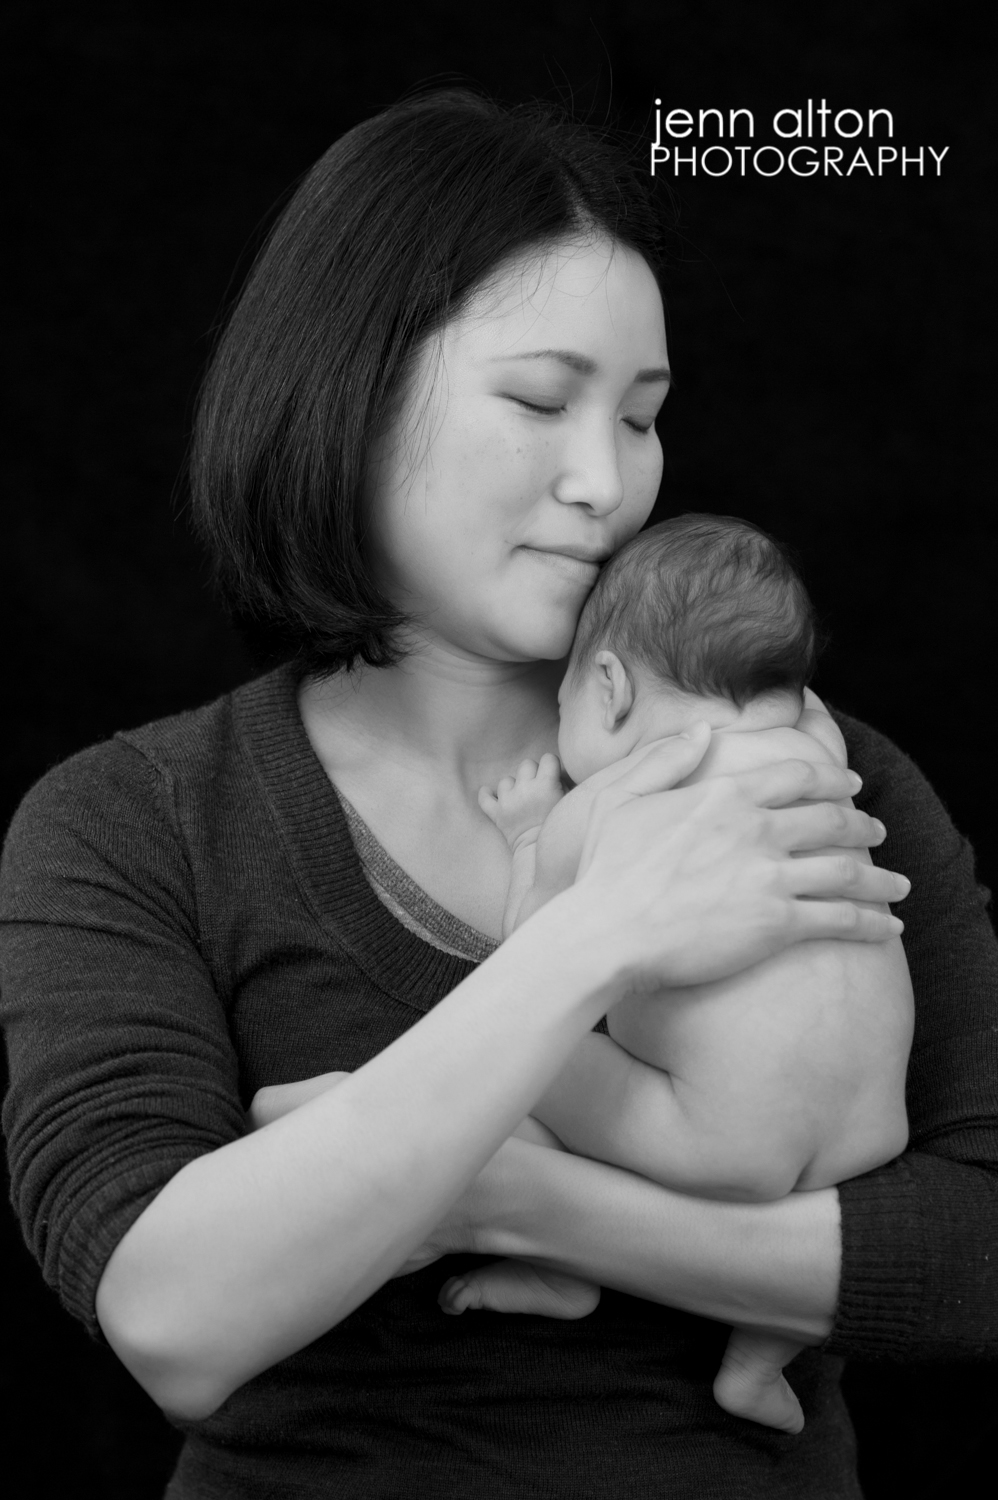 mom and newborn baby girl portrait, black and white